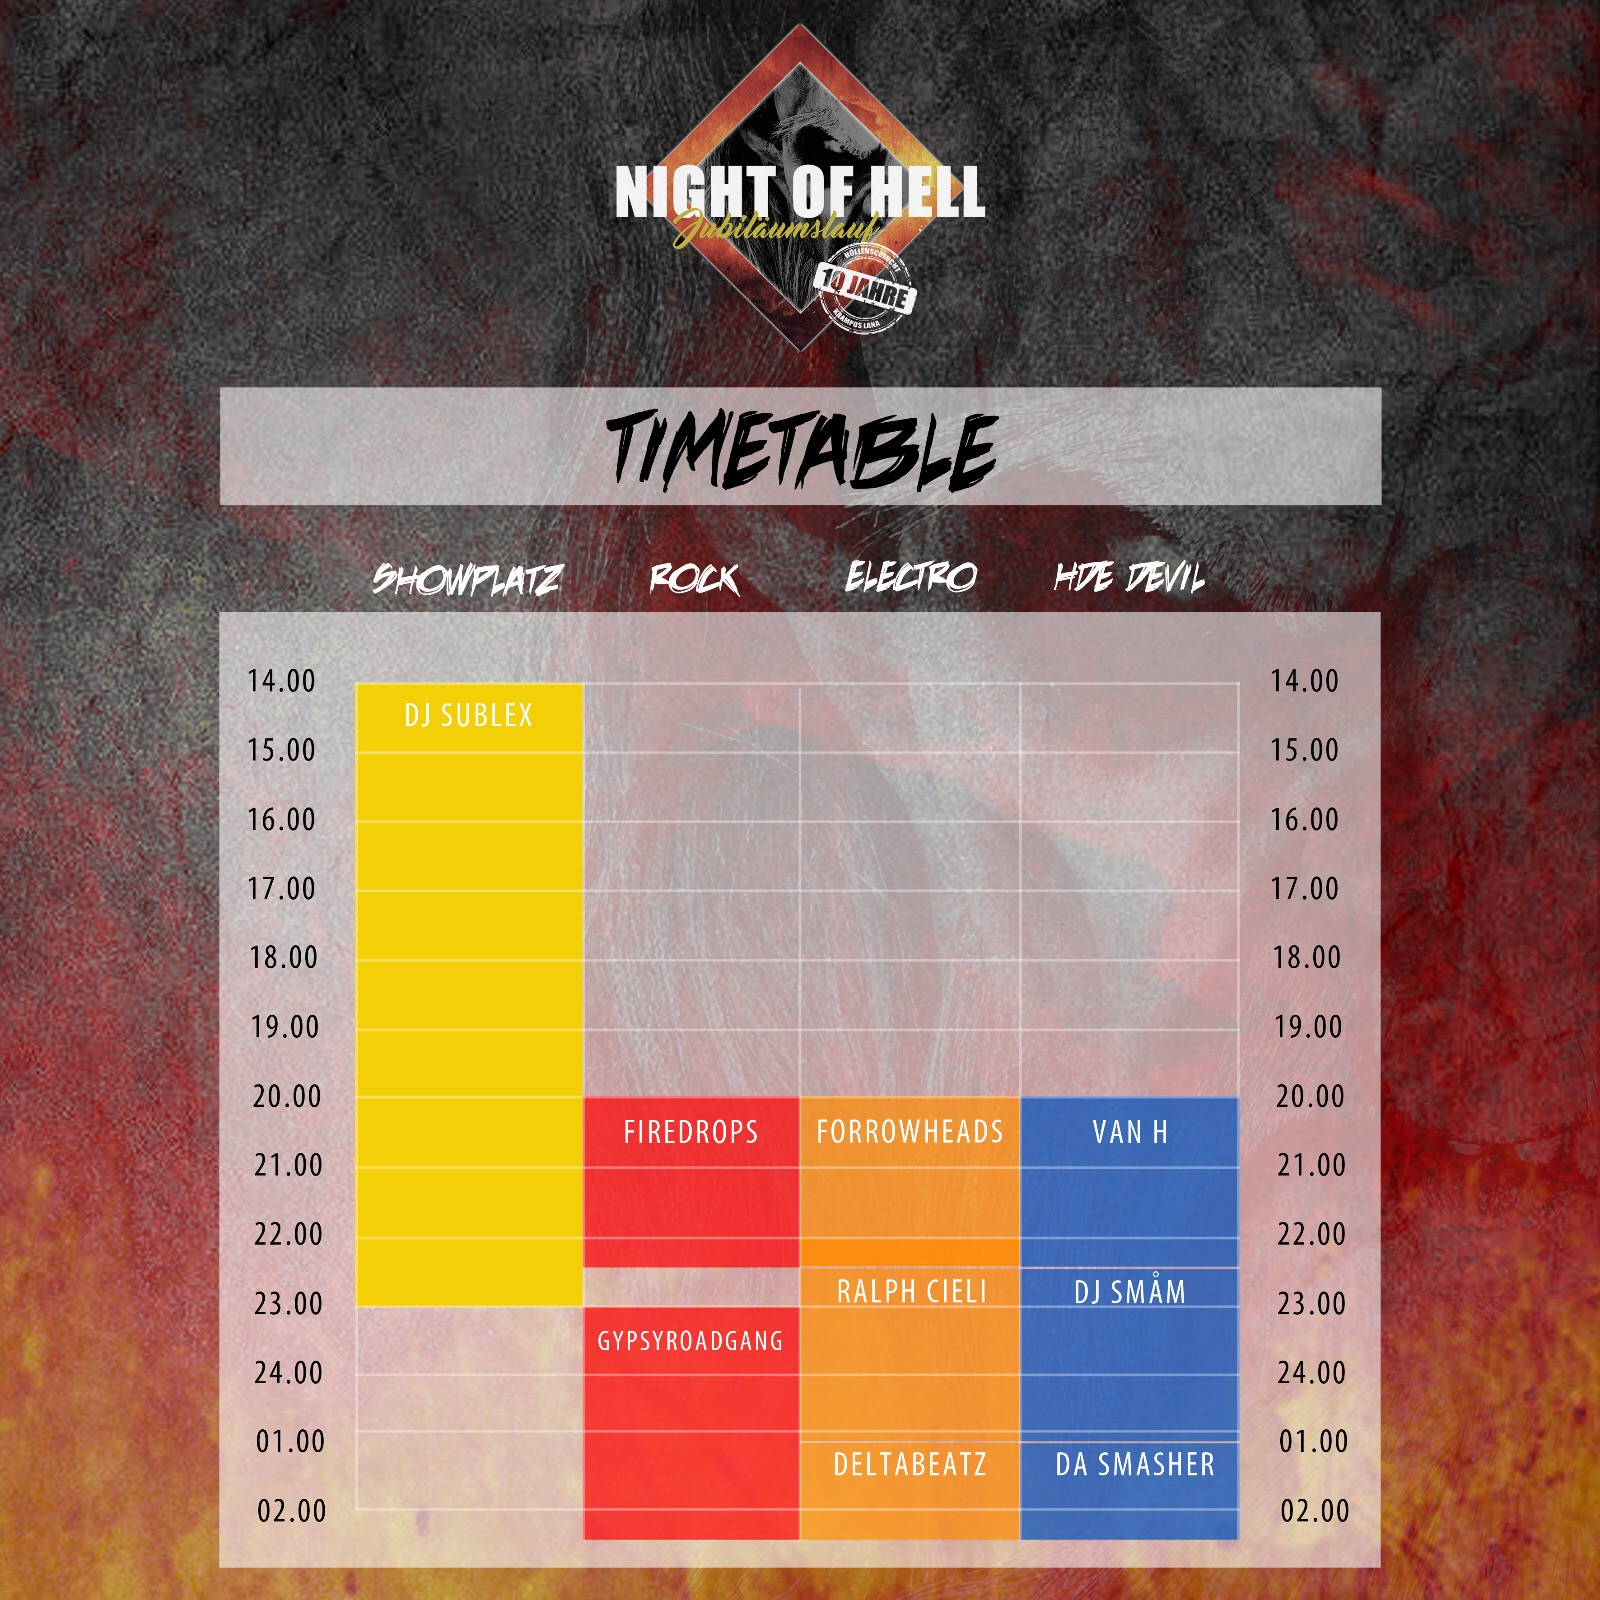 timetable_noh17